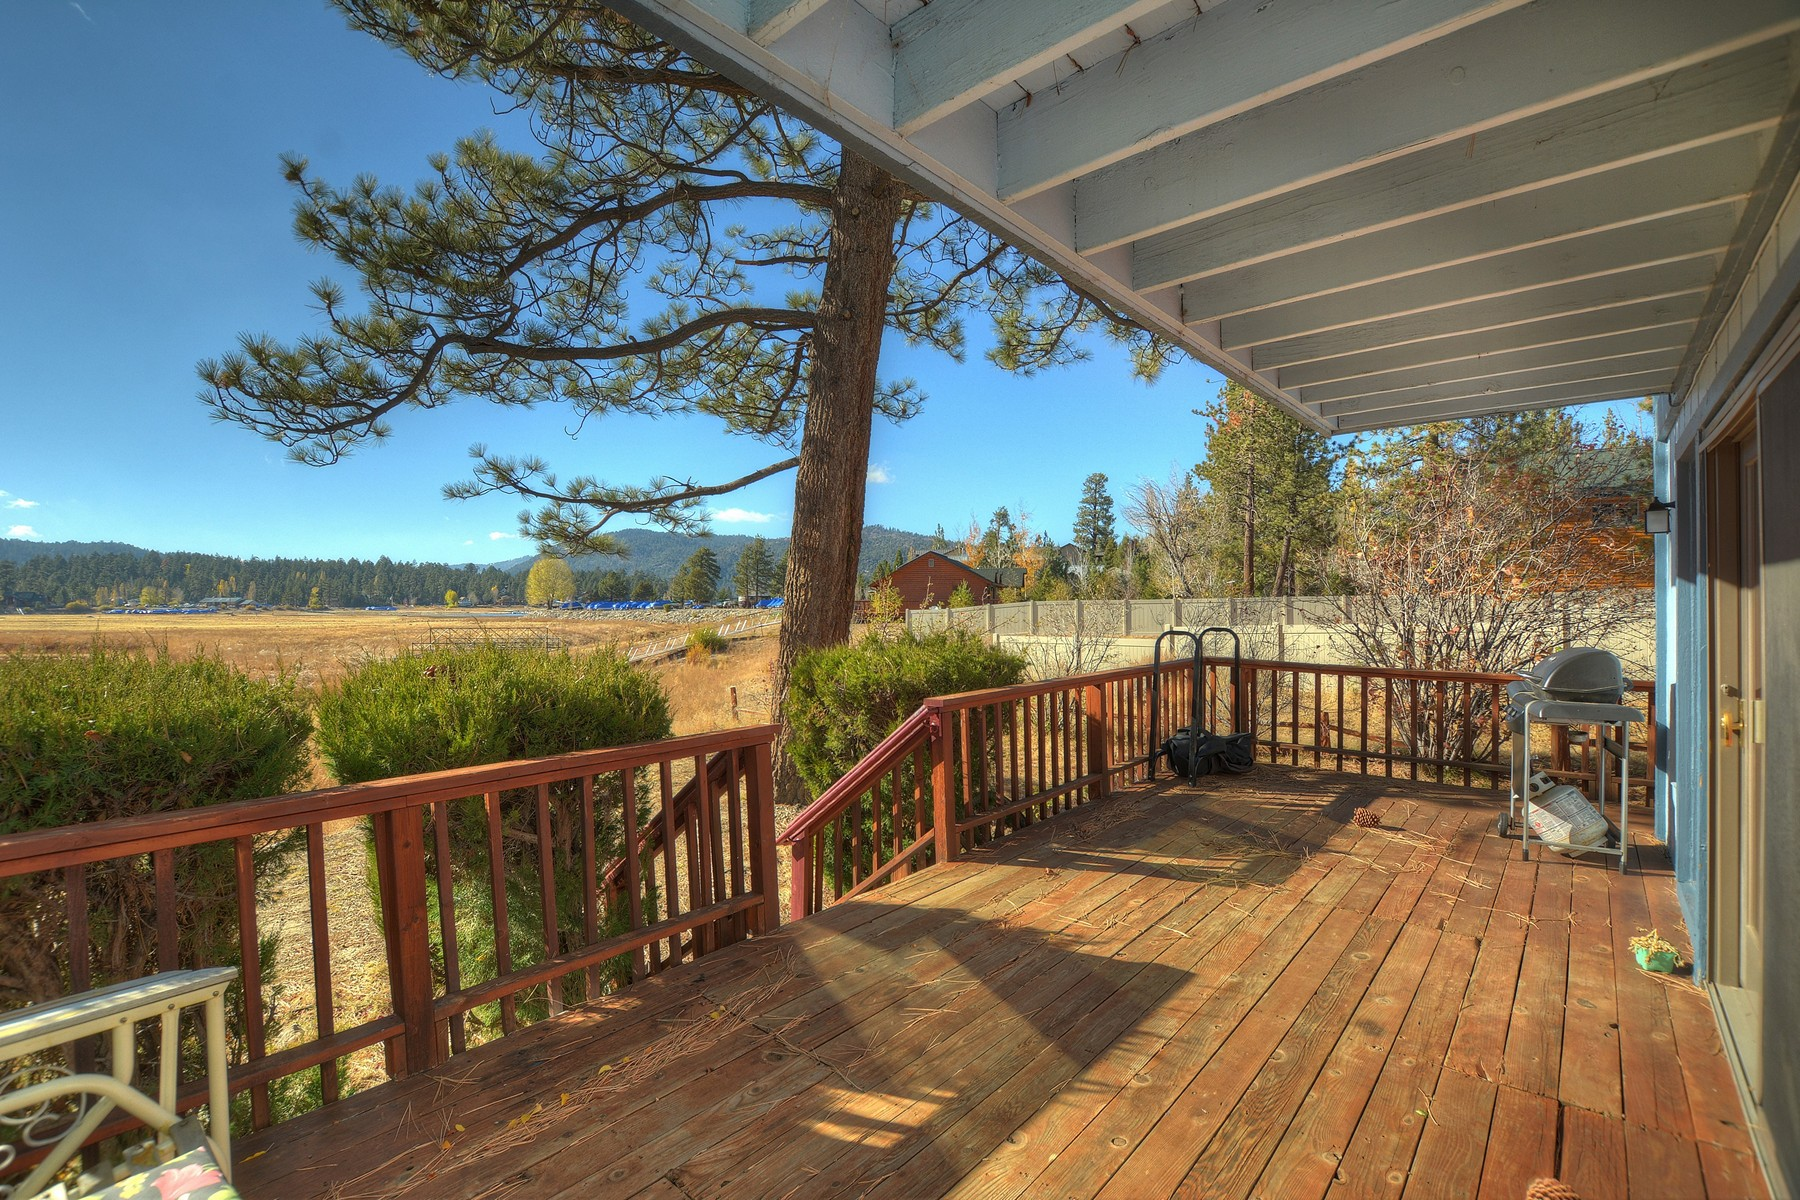 Single Family Home for Sale at 476 Tavern, Big Bear Lake Ca. 92315 Big Bear Lake, California 92315 United States